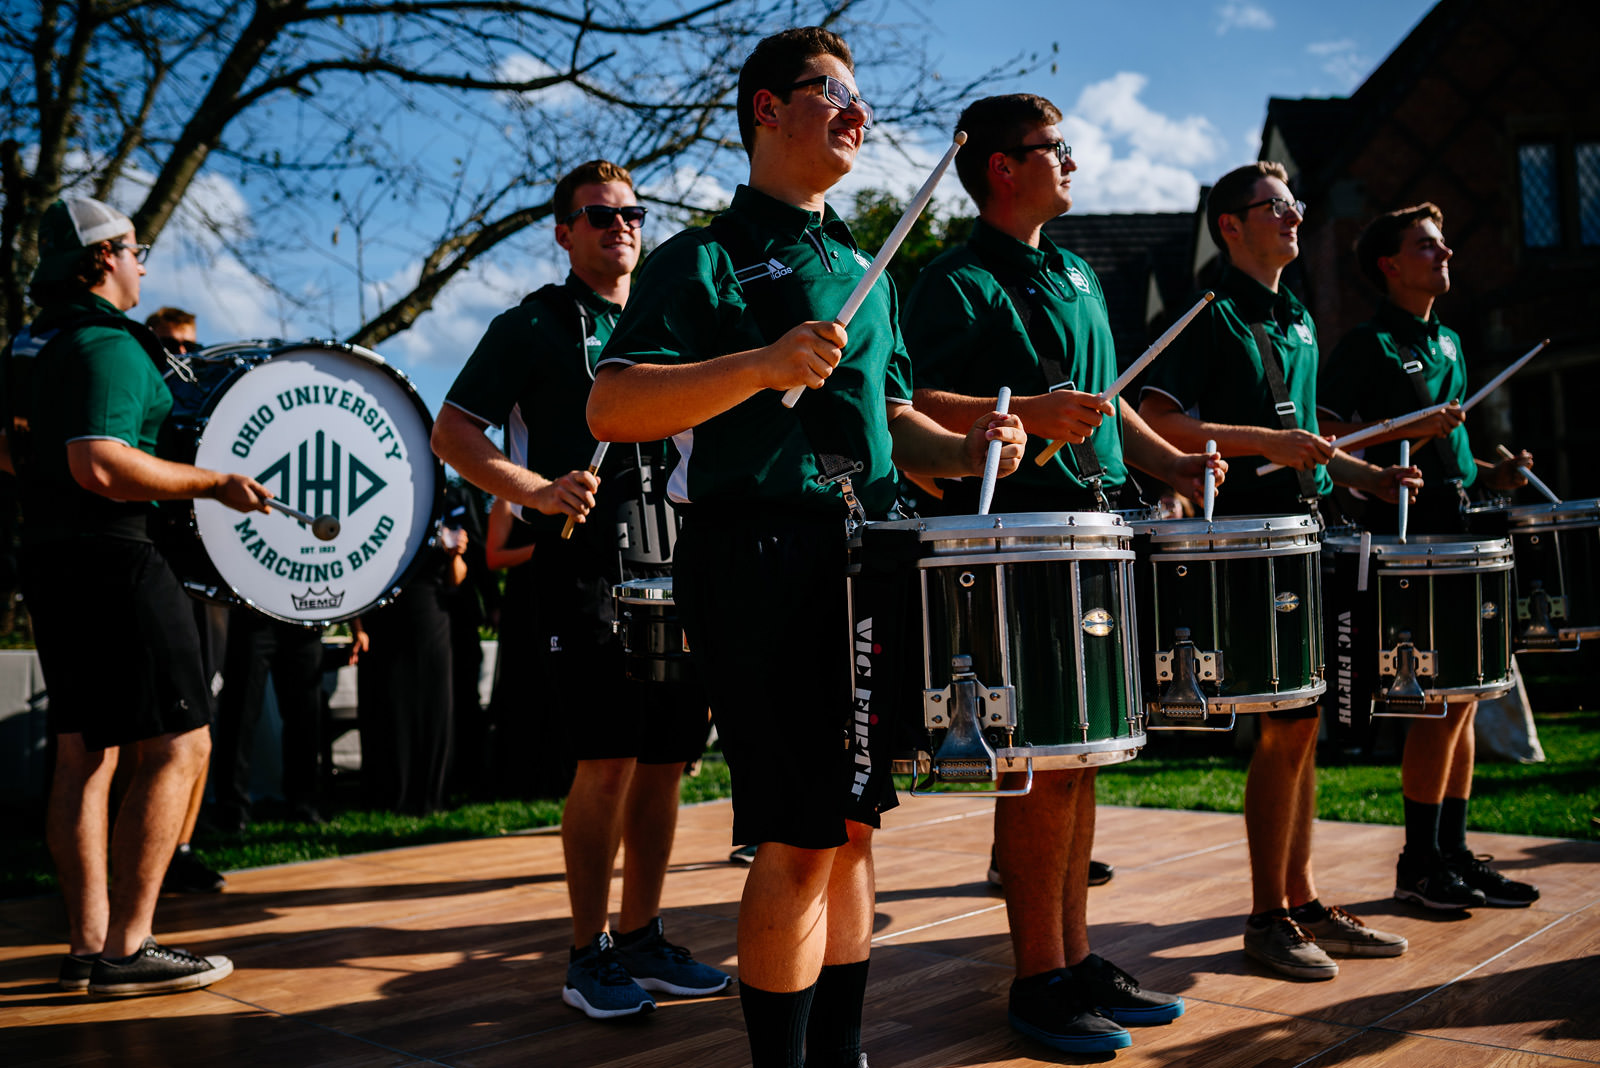 ohio university marching 110 drumline zenner house wedding athens ohio